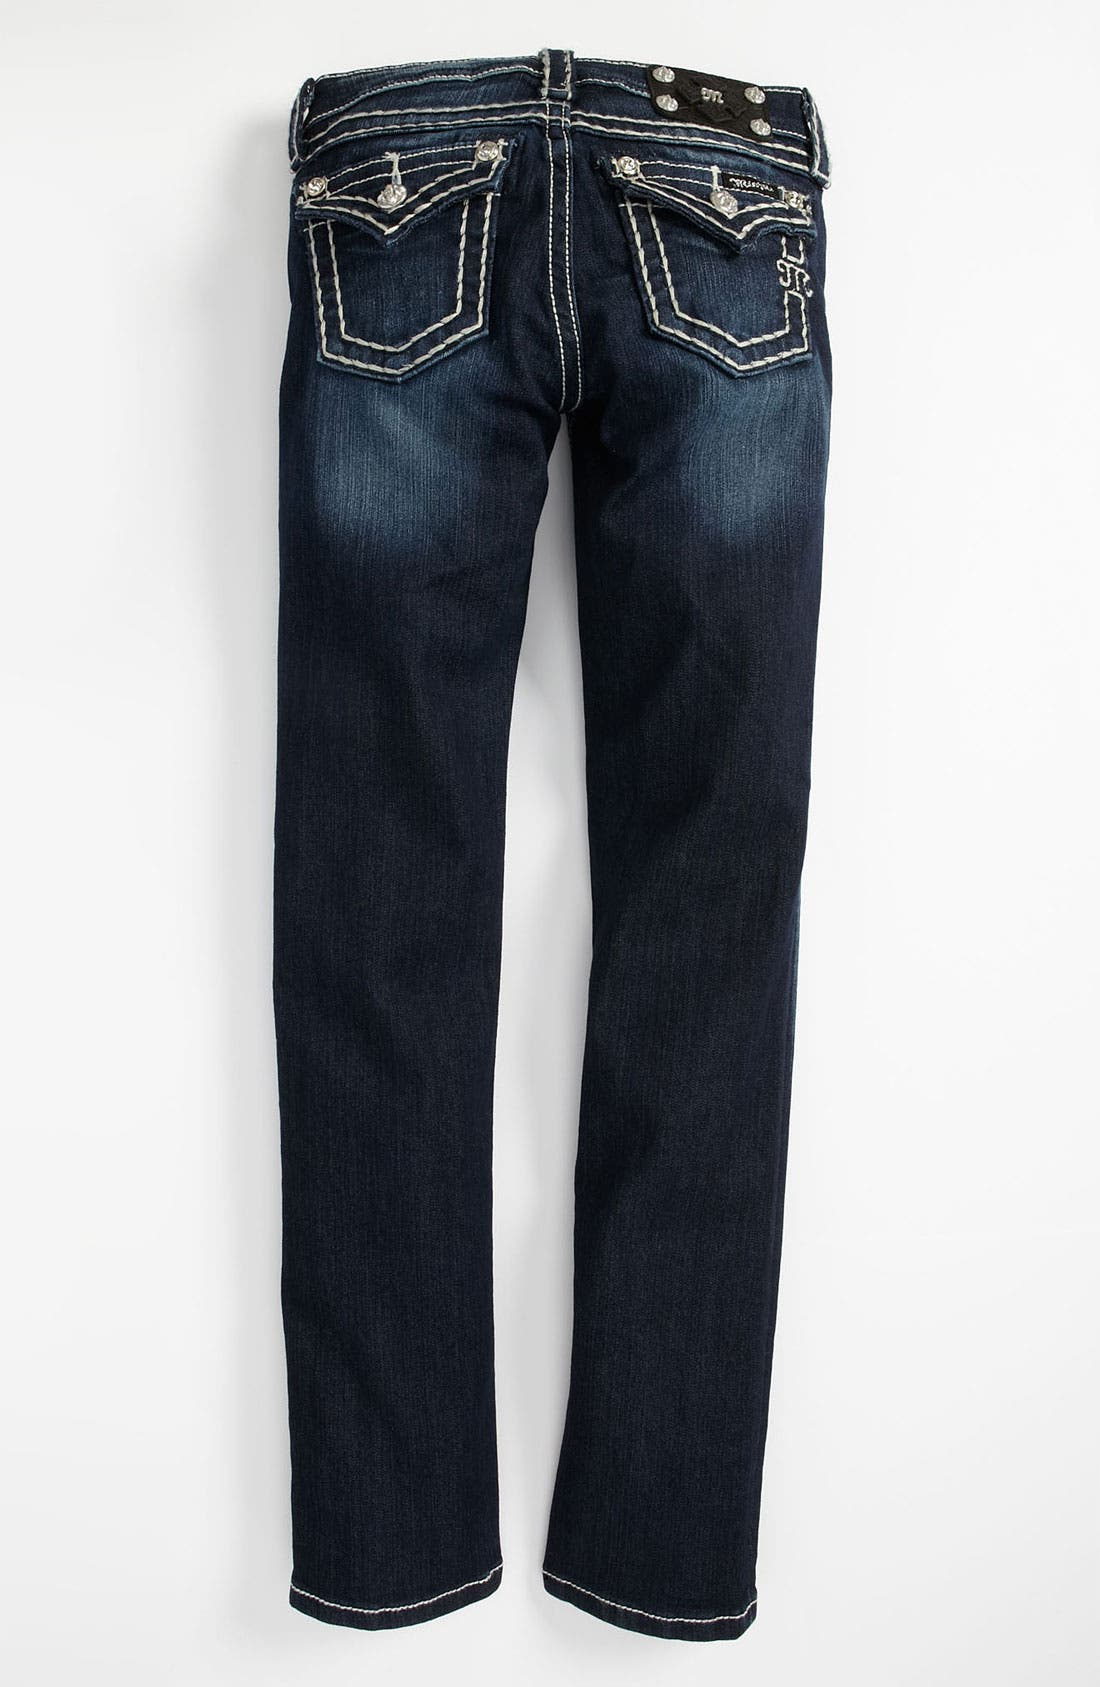 Main Image - Miss Me Whip Stitch Skinny Jeans (Big Girls)